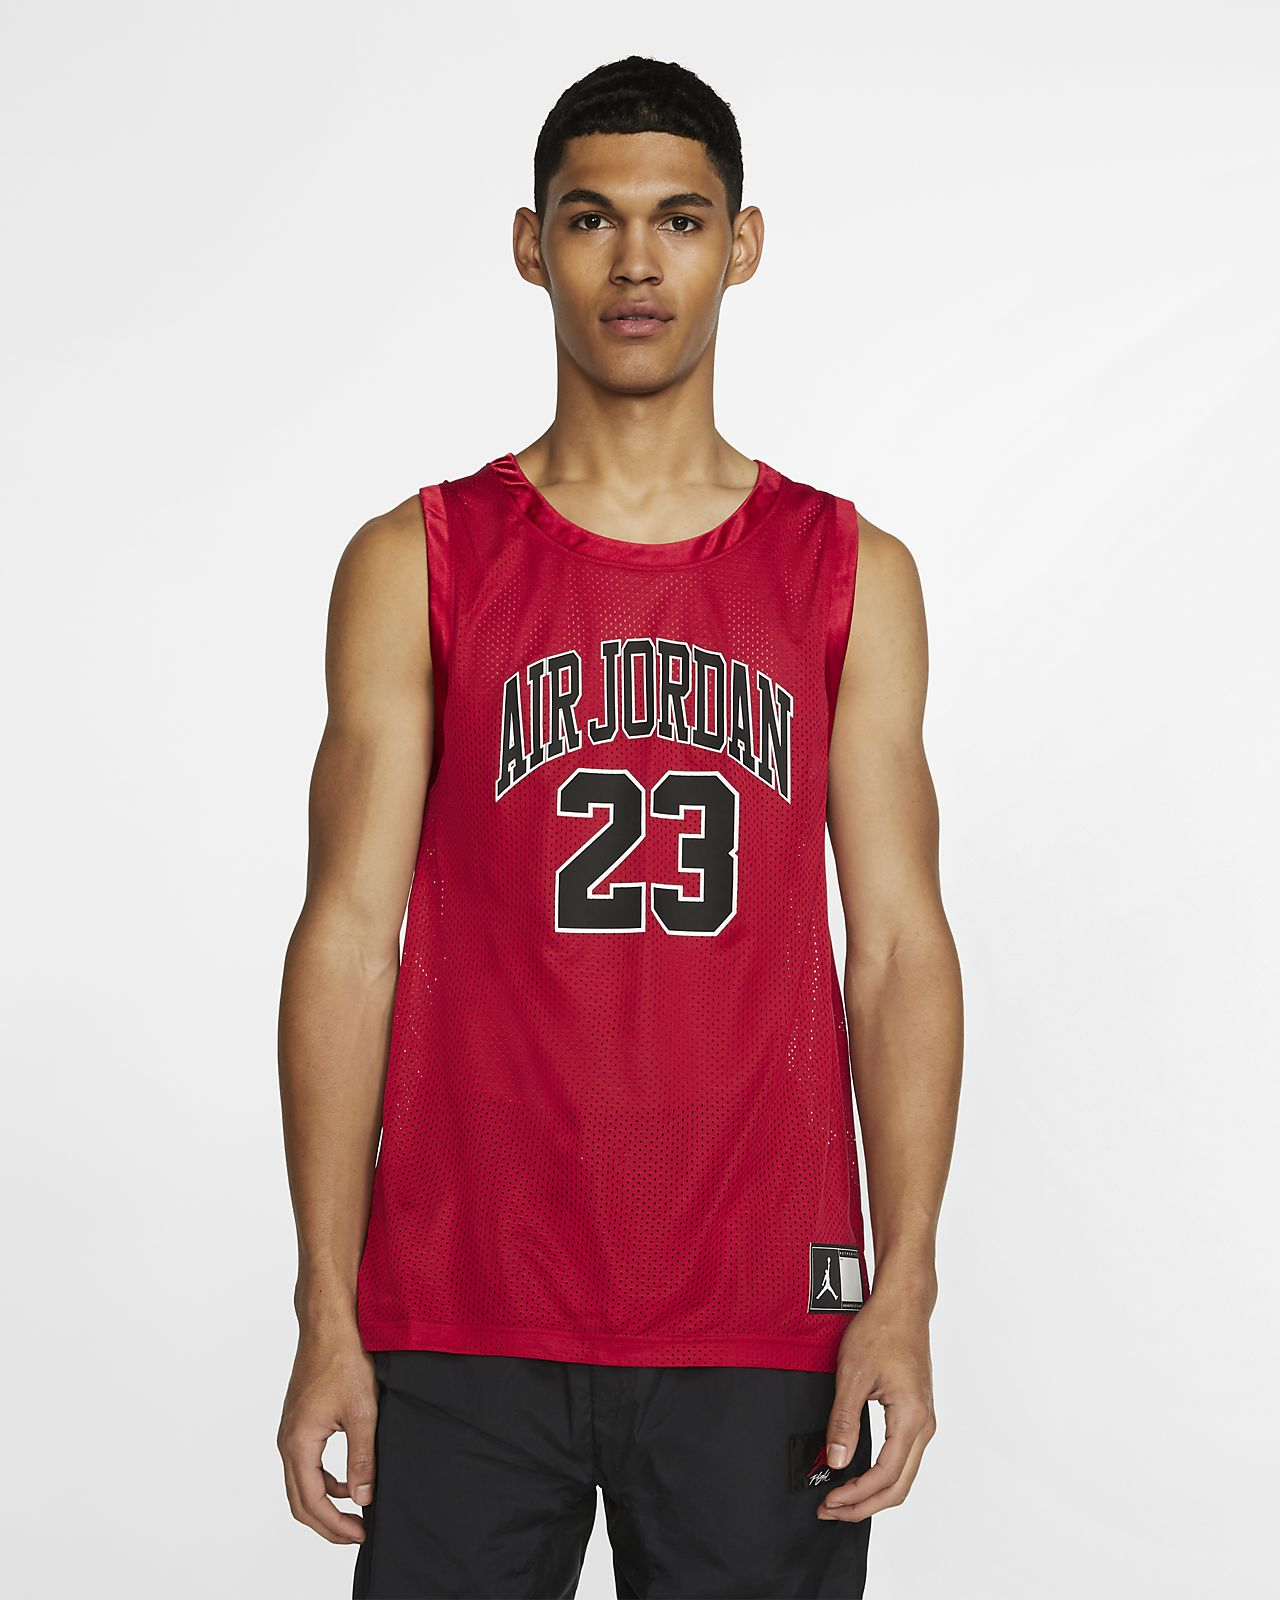 Jordan DNA Distorted Men's Basketball Jersey